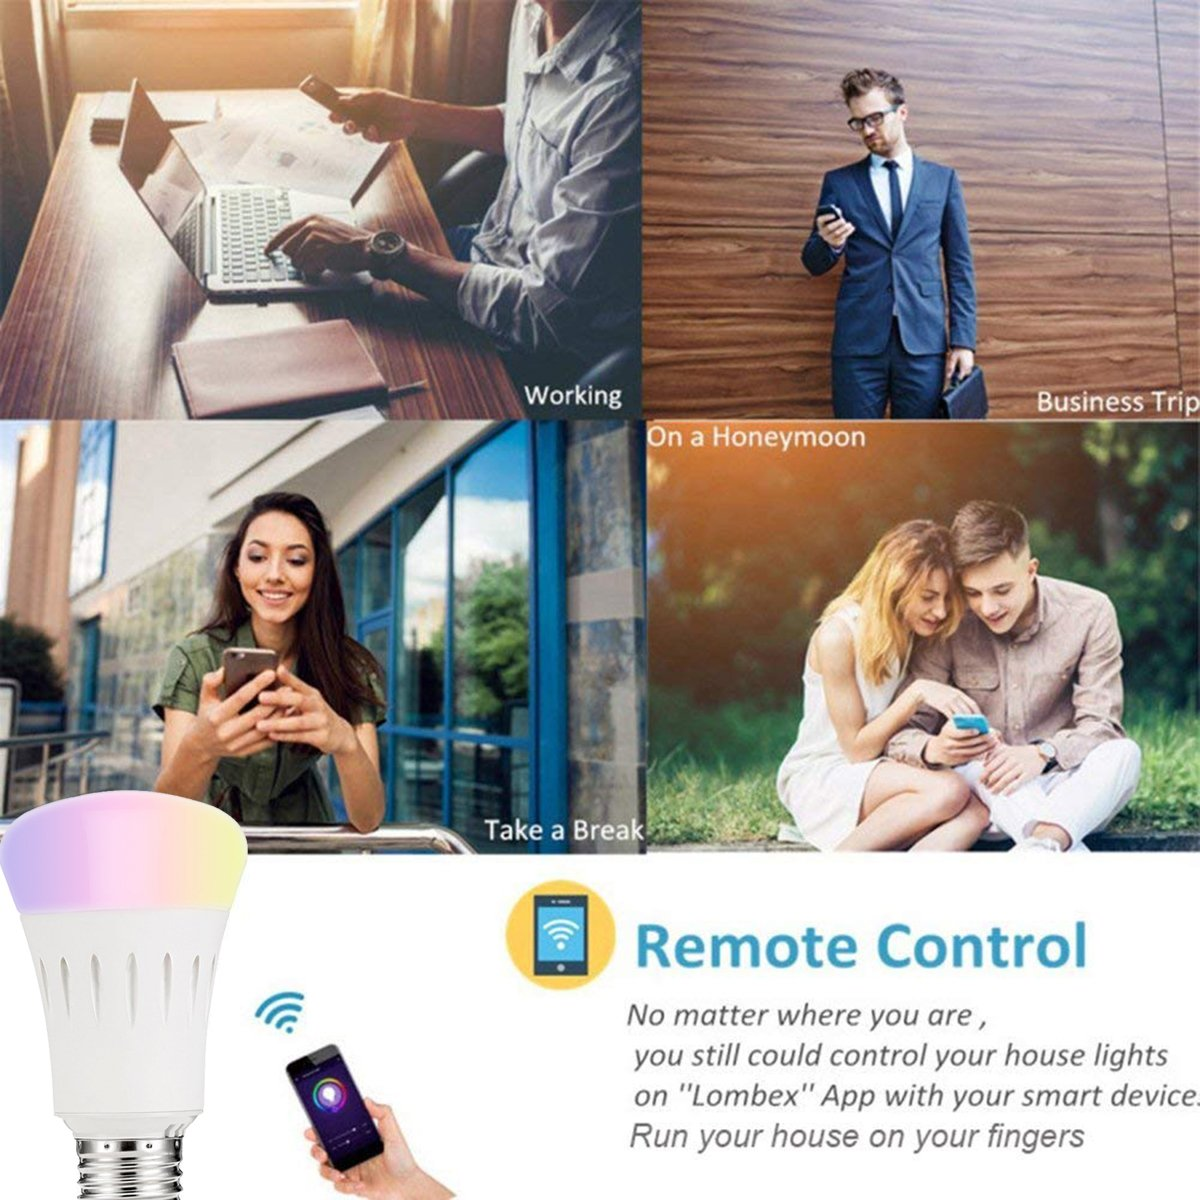 2Pack Smart Bulb Compatible with Alexa,Google Home,Wifi Smart Light Bulb,Dimmable,Timer Switch,Multicolored,No Hub Required,Remote Control,Scene Mode,Wake Up Lights Function by Buycitky (Image #4)